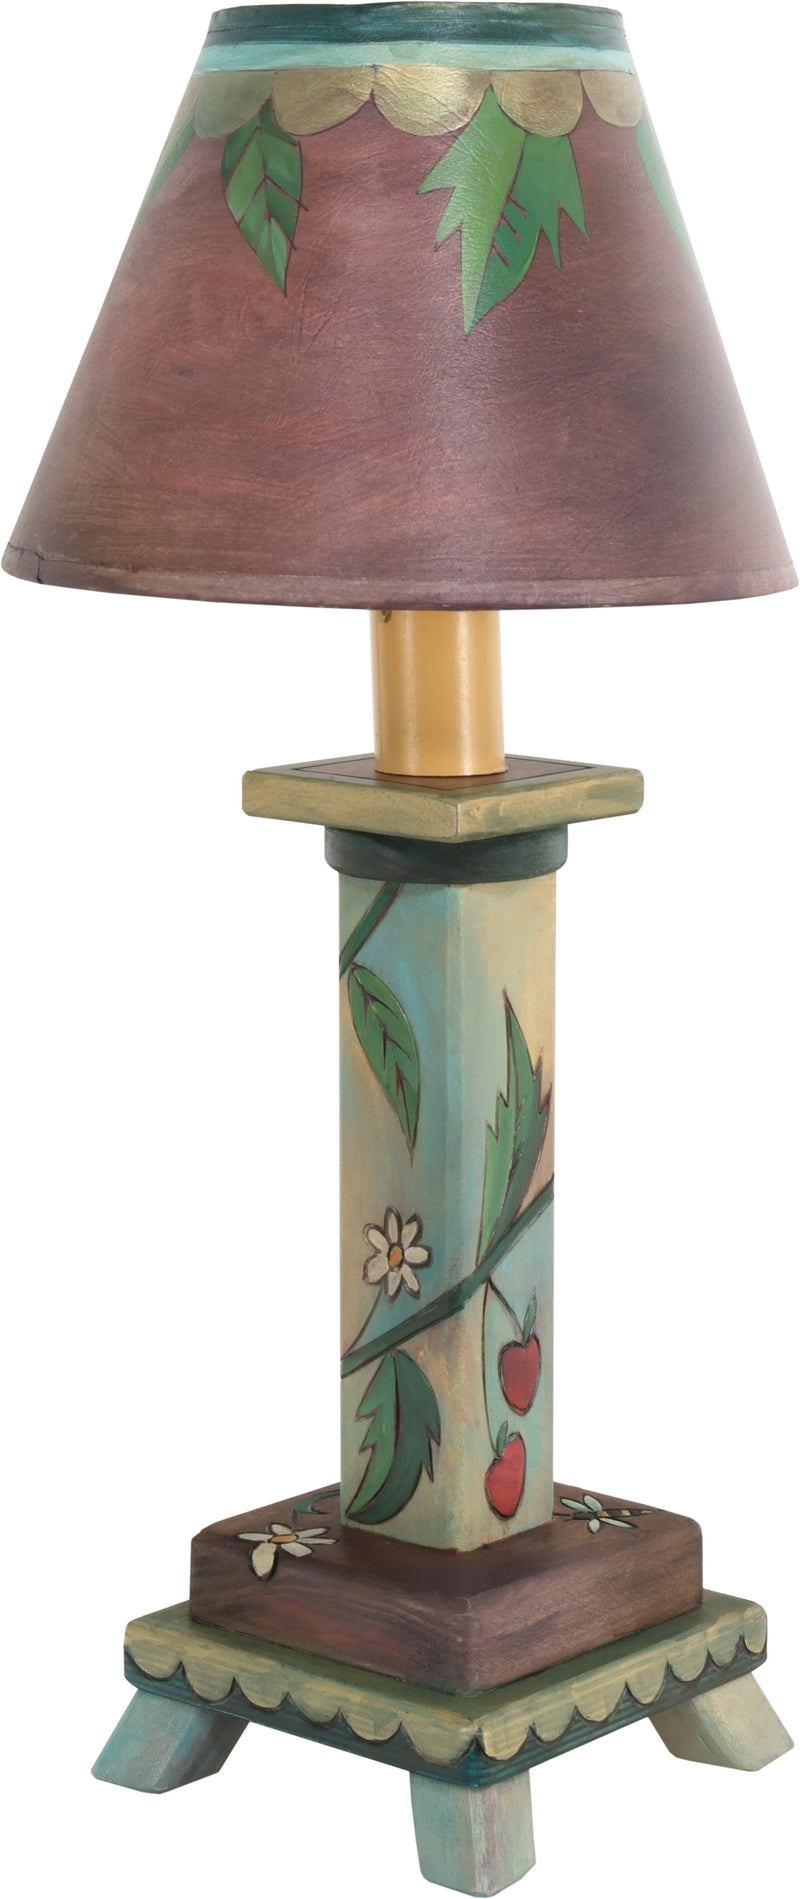 Milled Candlestick Lamp –  Floral vine motif lamp done in a rich, classic color palette